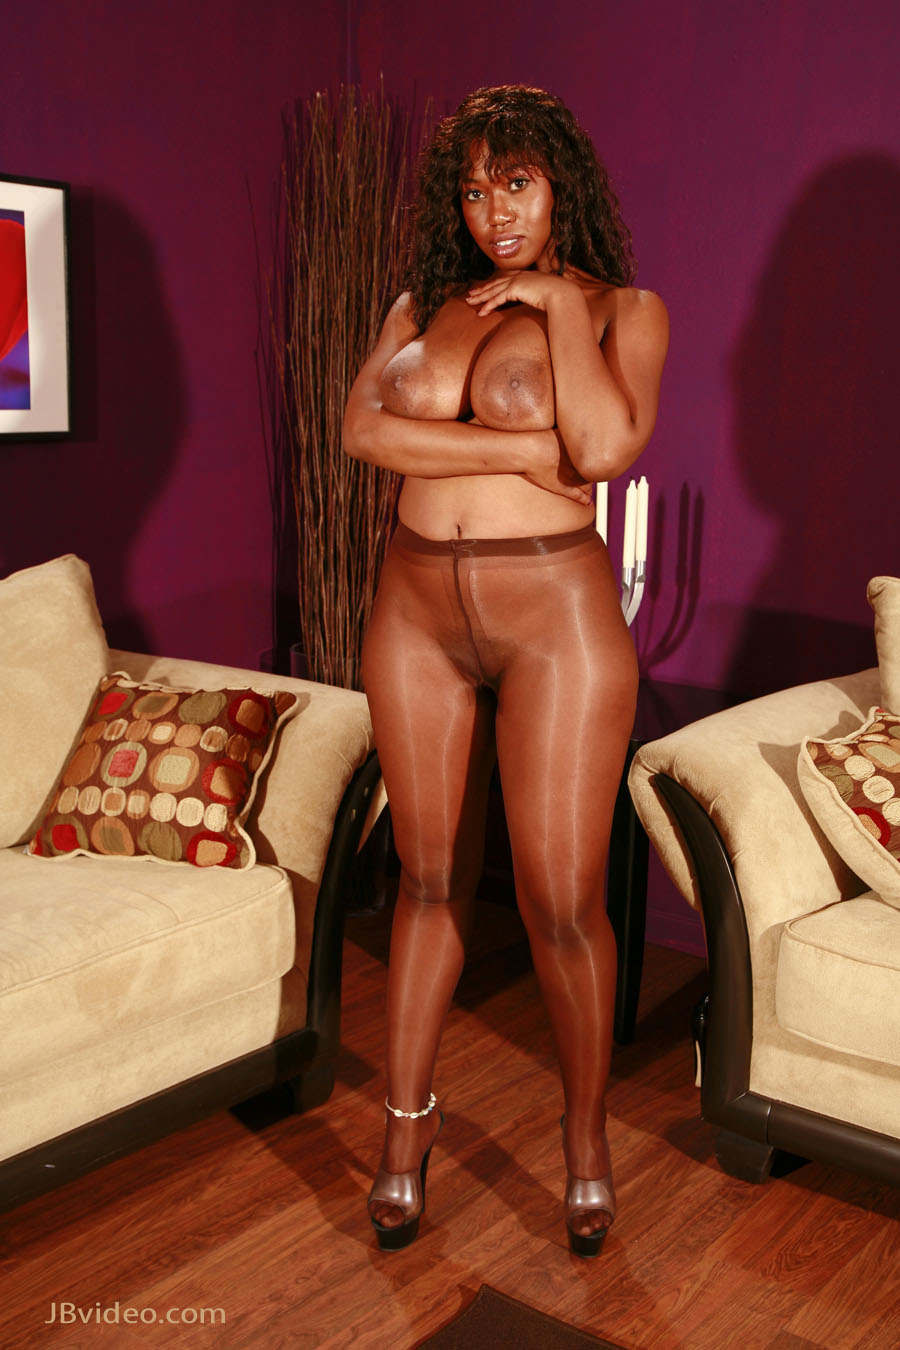 Big Tits Now Pantyhose - 8960 videos / Page 2